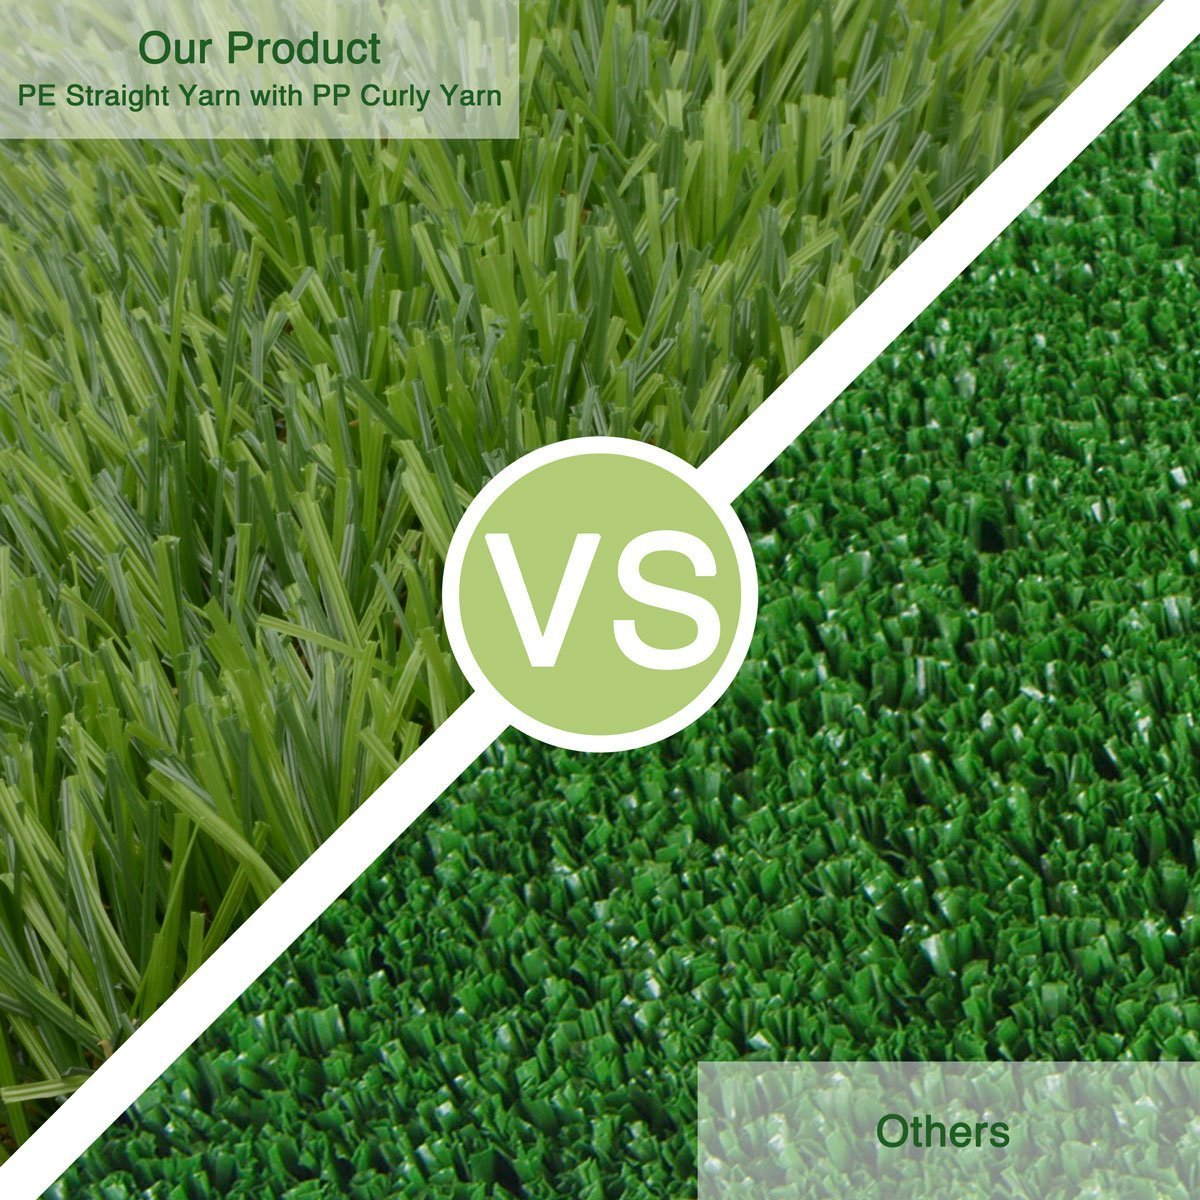 Synthetic Turf Artificial Lawn Grass Indoor Outdoor Premium Realistic Landscape (6.5 ft X 13 ft = 84.5 sqf) by CBEC (Image #5)